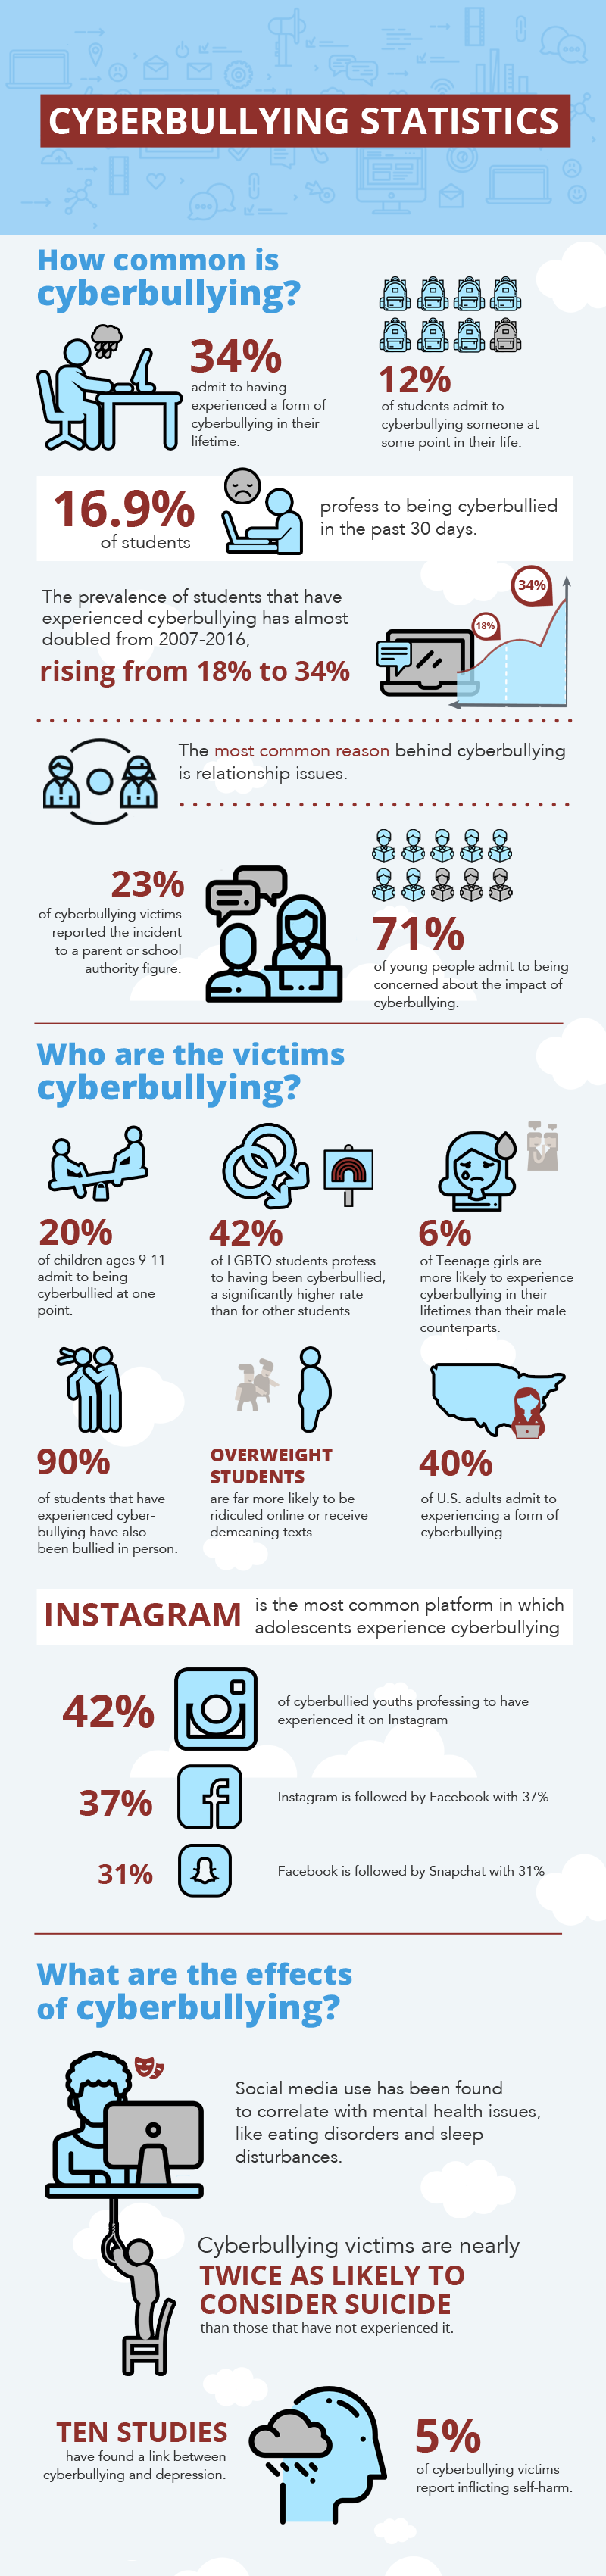 Cyberbullying Statistics Infographic